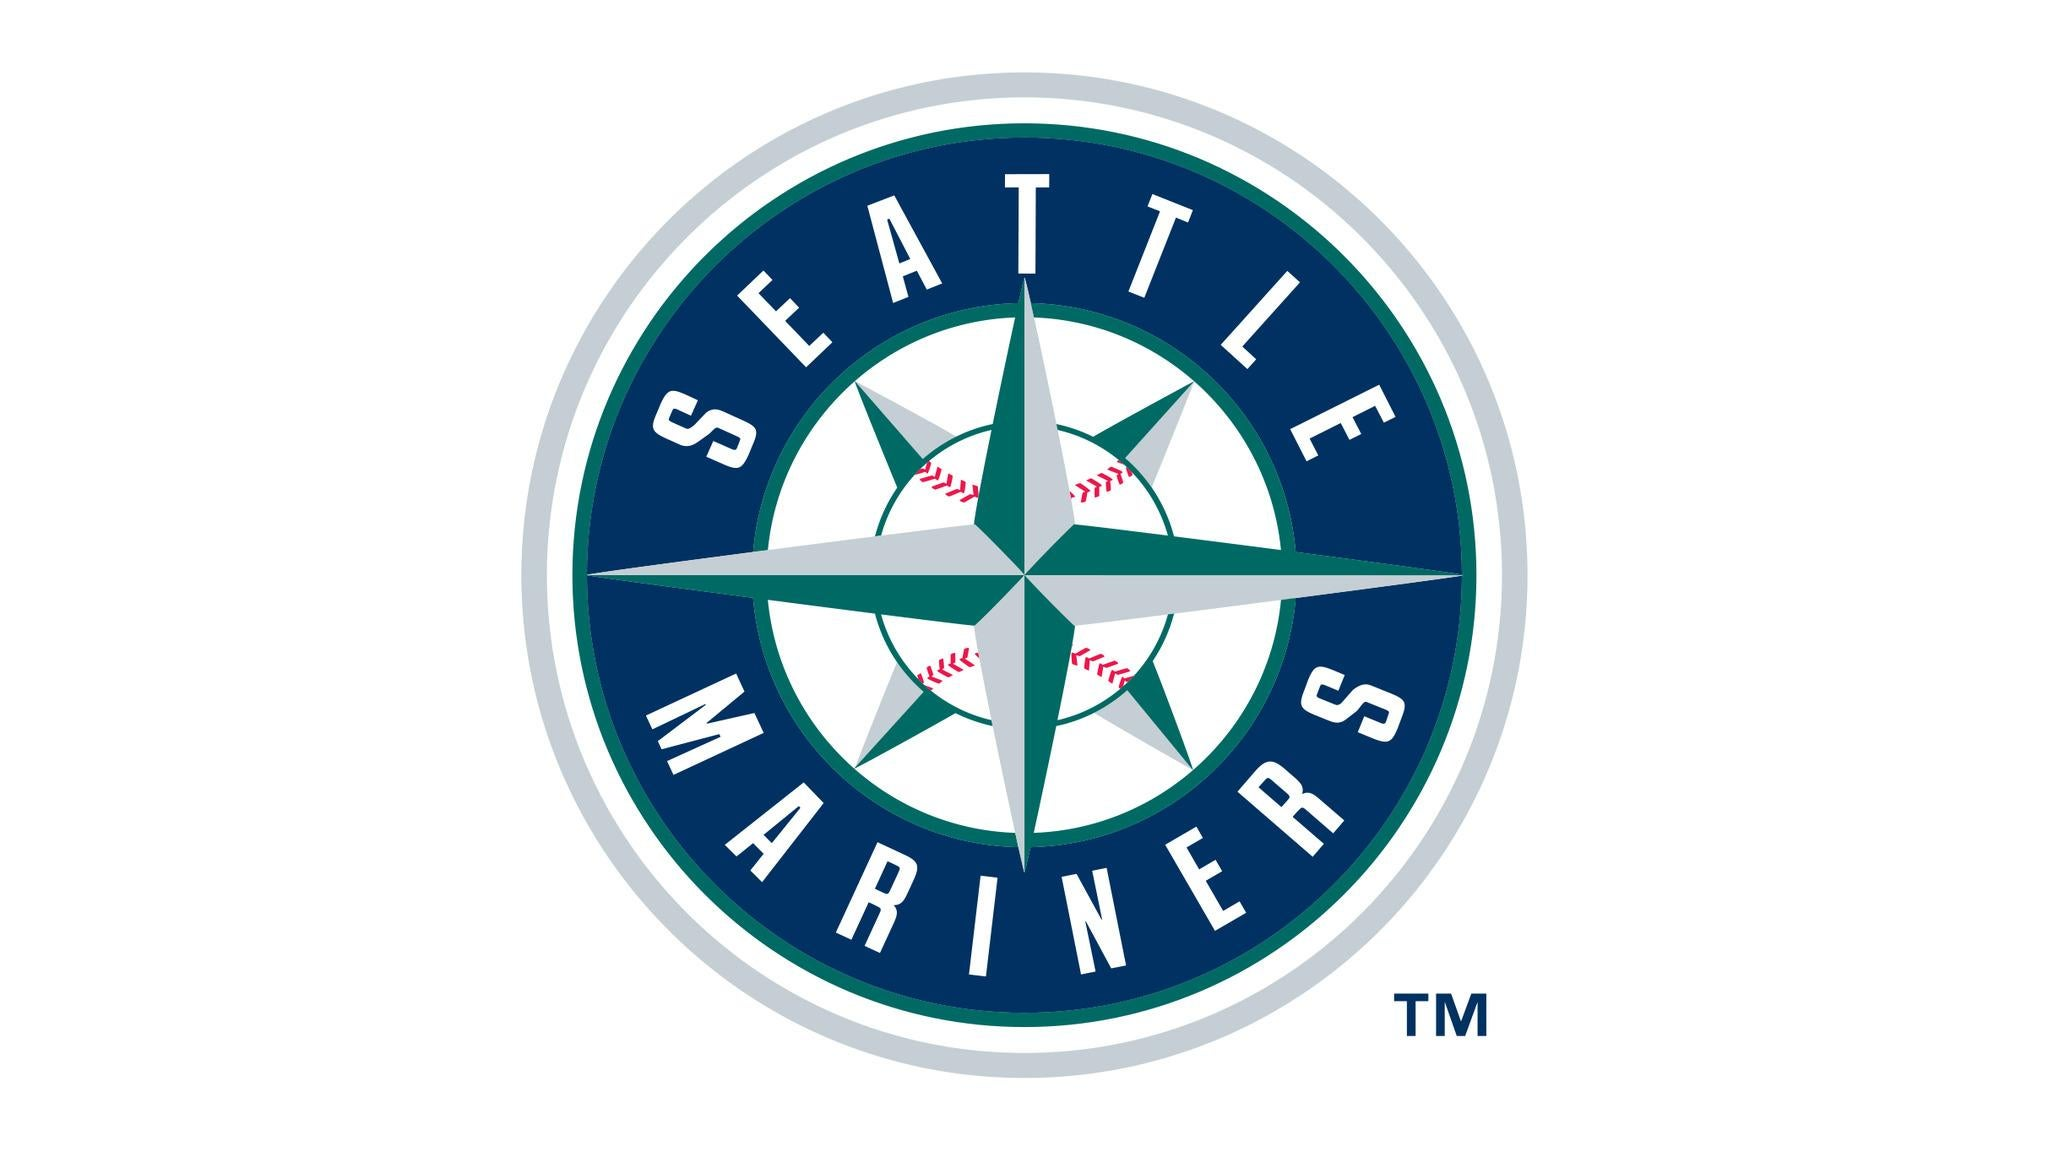 Seattle Mariners vs. Oakland Athletics at Safeco Field